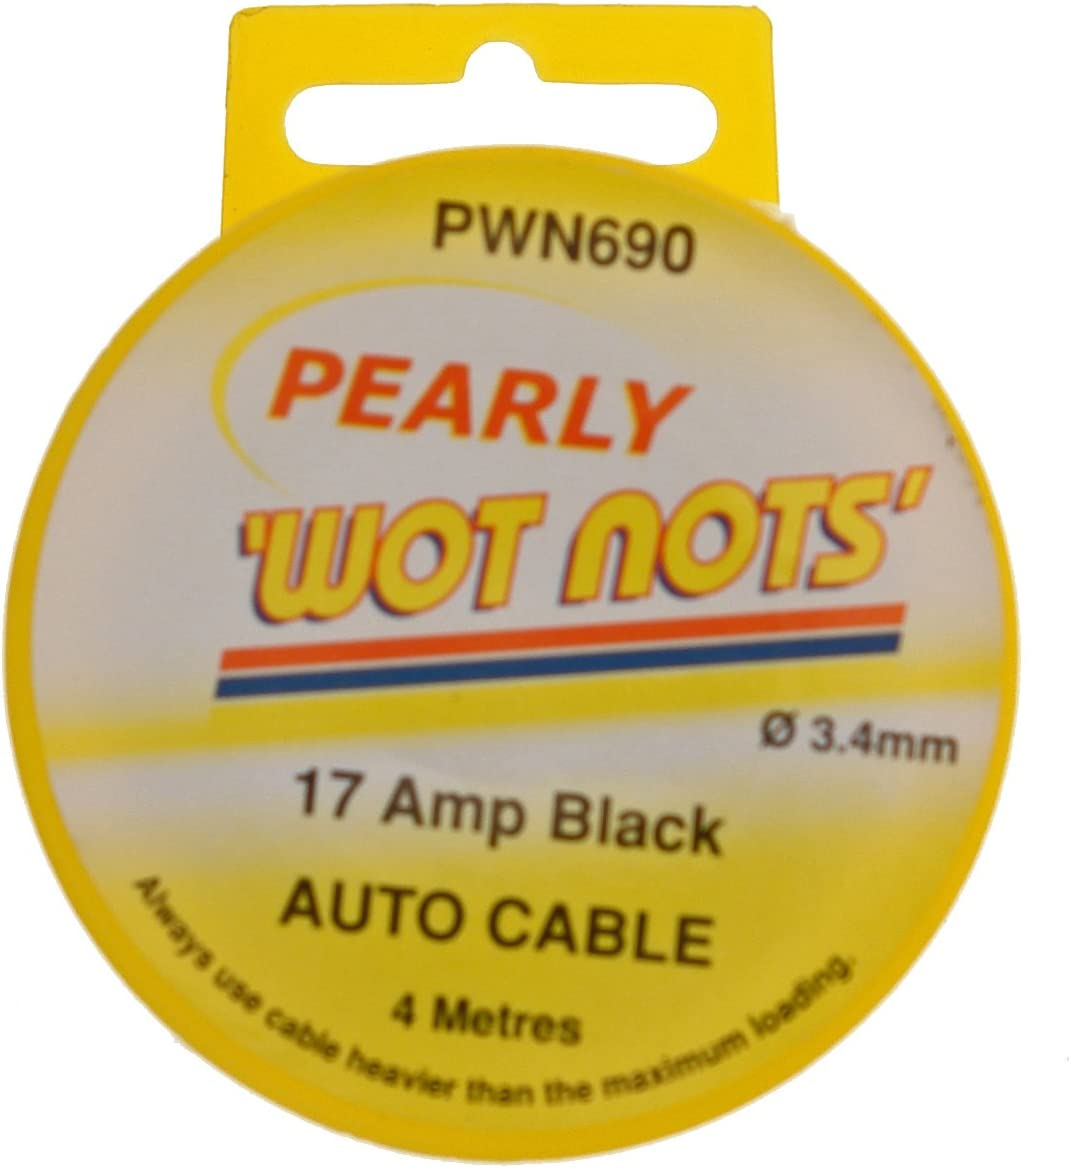 Pearl Automotive PWN690 17A 3.4mm x 4m Wiring Cable Black